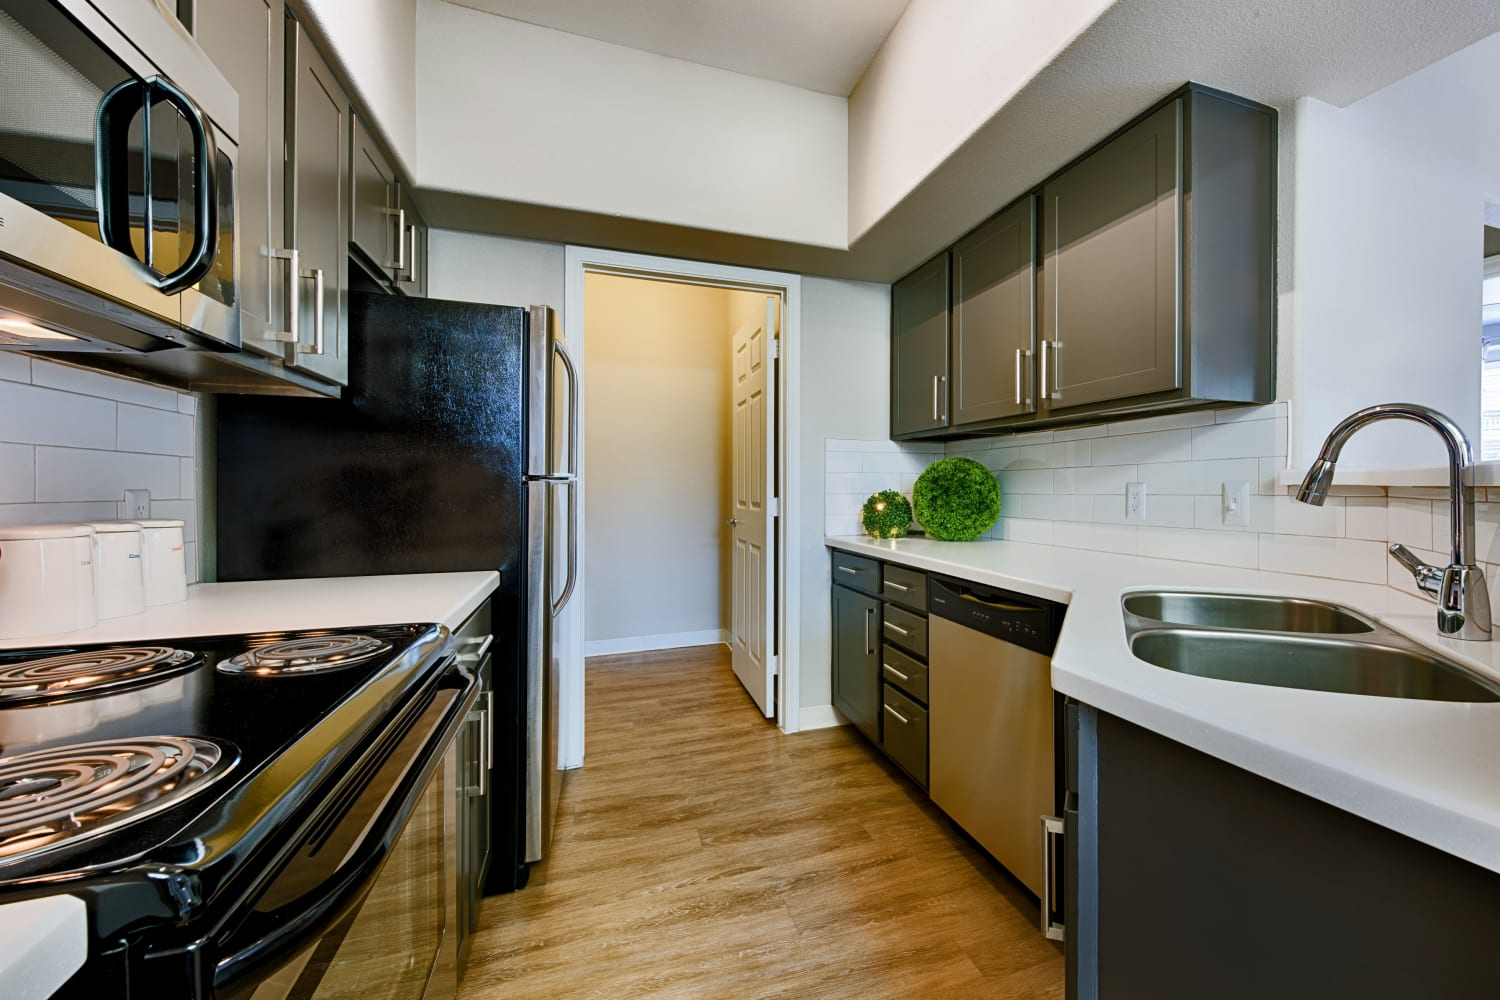 Sonoran Vista Apartments in Scottsdale, Arizona, offer kitchens with upgraded appliances